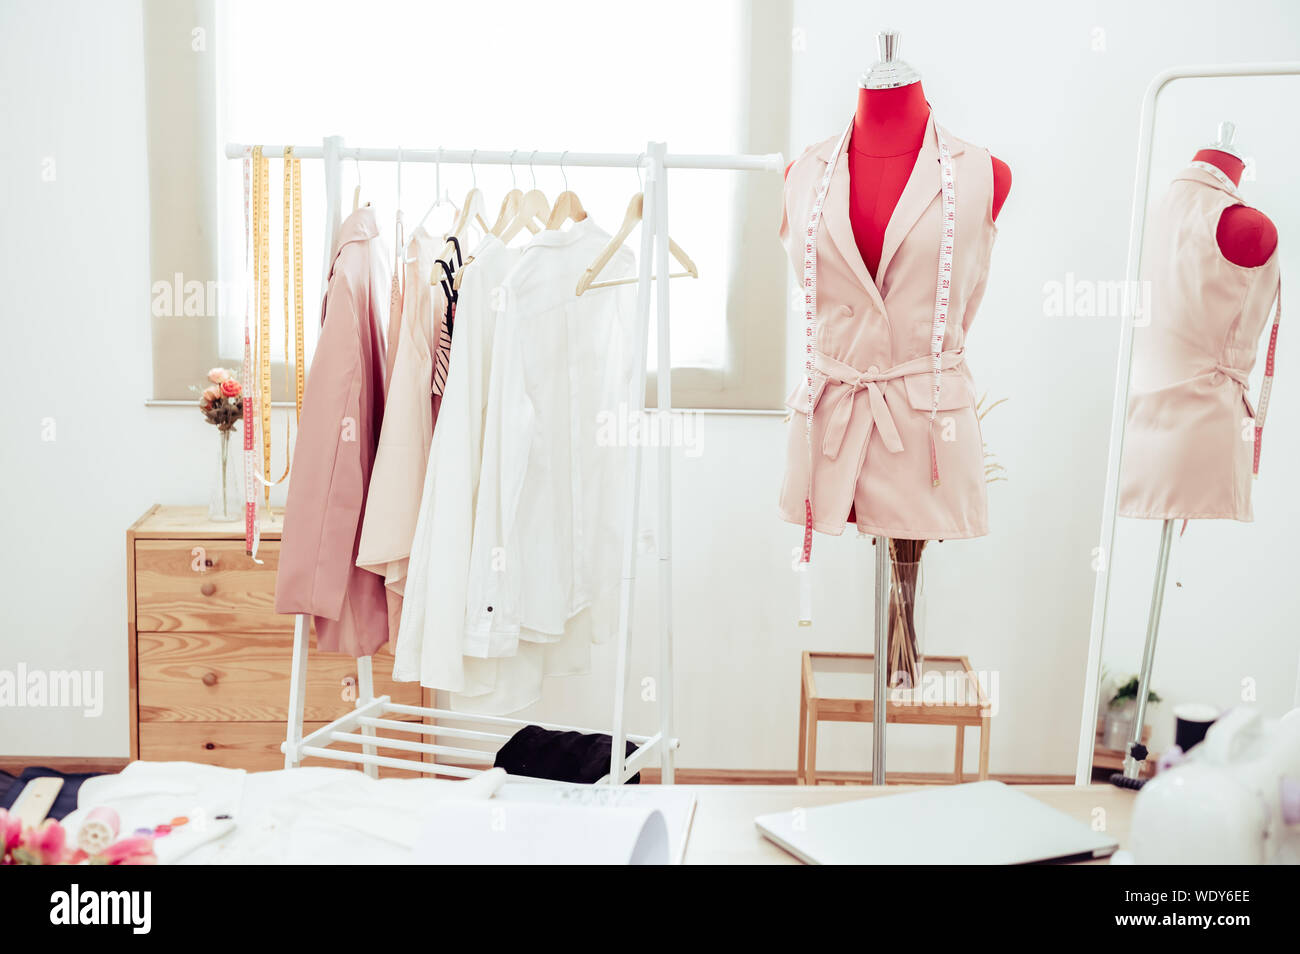 Fashion Designer Showroom Studio Workshop Background With New Collection Of Pink Pastel Female Clothing Design Tailor And Sewing Concept Dressmaker Stock Photo Alamy